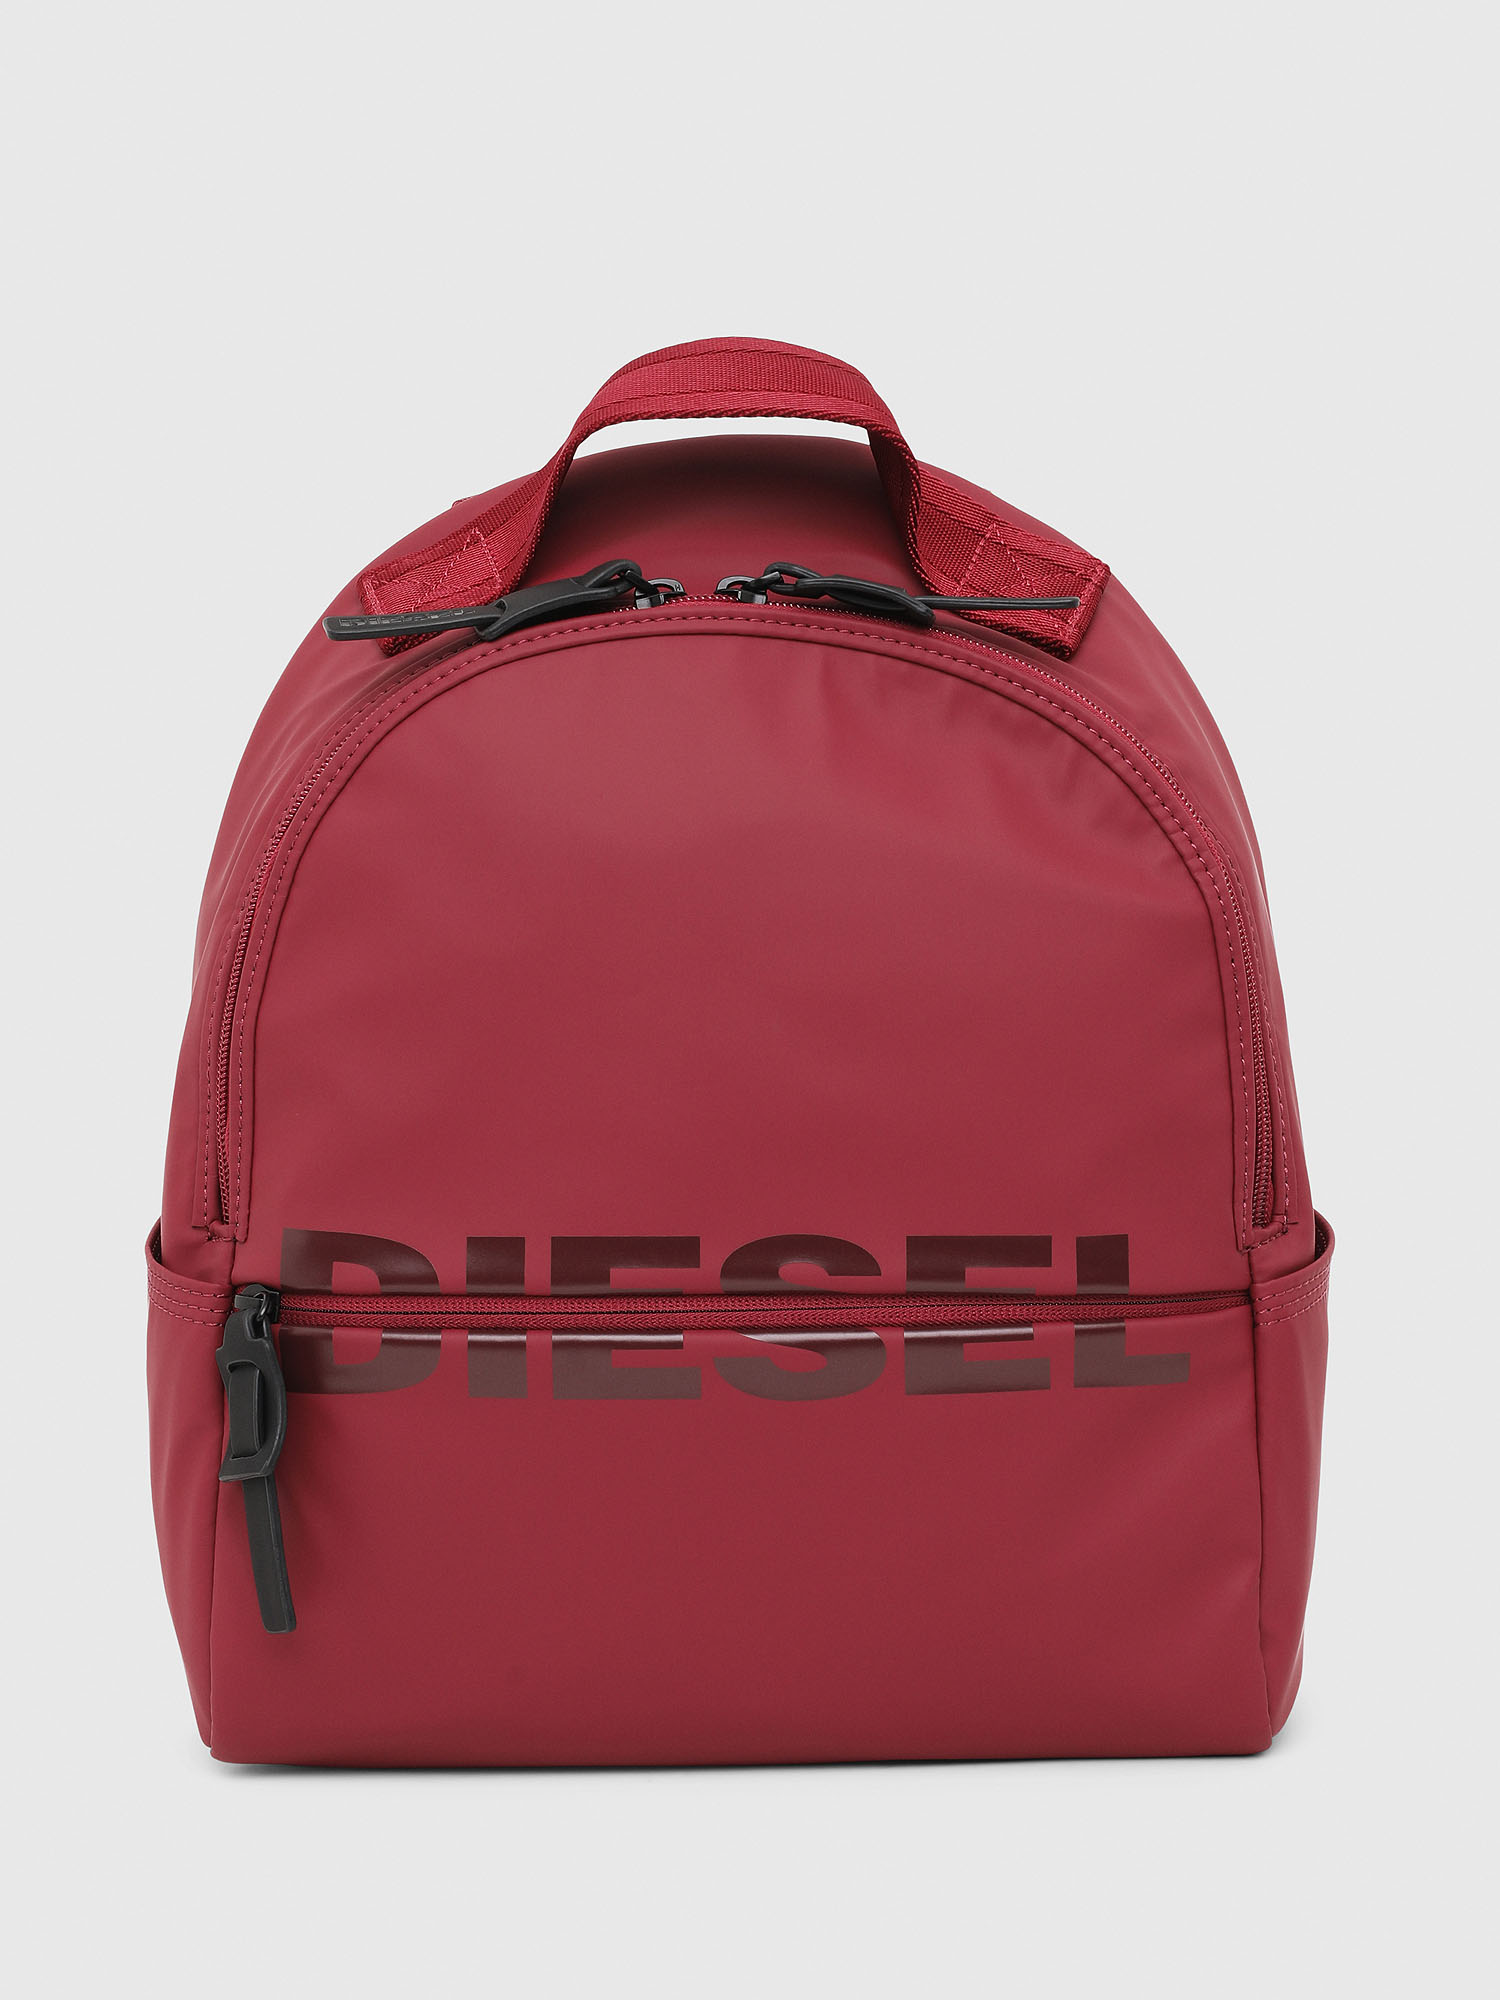 Diesel Backpacks P1705 - Red